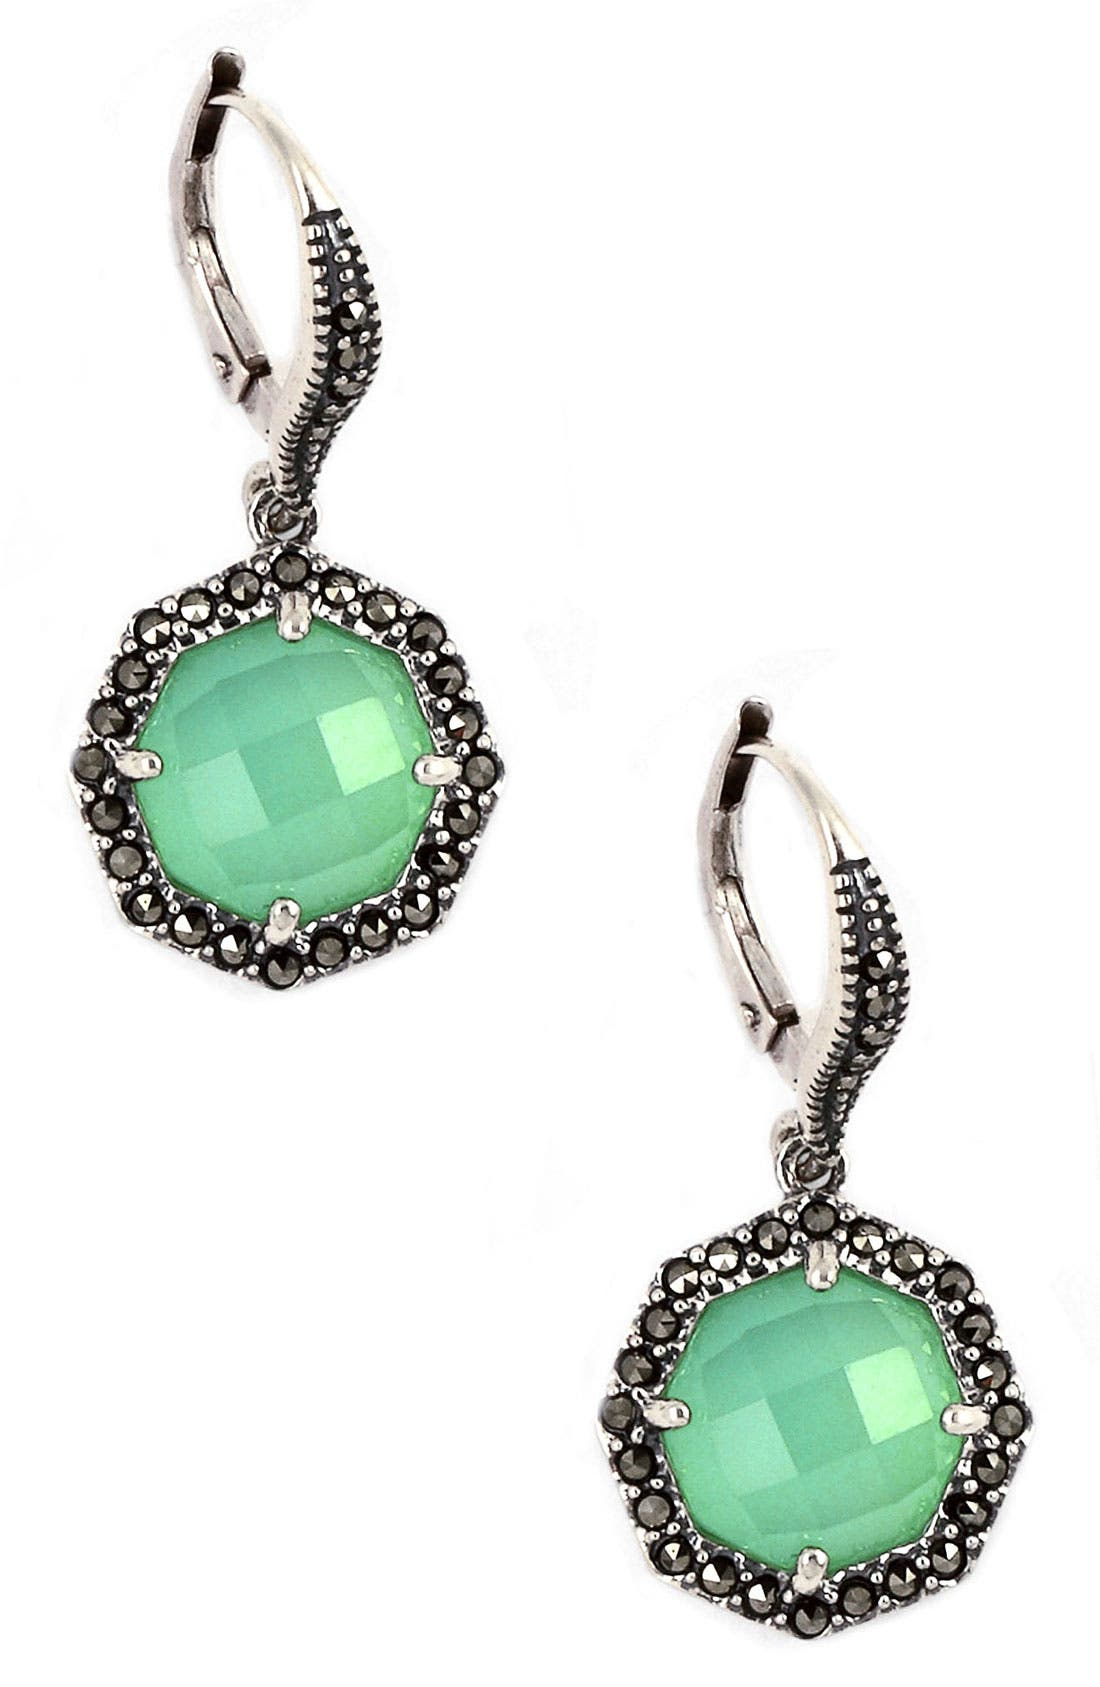 Alternate Image 1 Selected - Judith Jack 'Maldives' Small Stone Drop Earrings